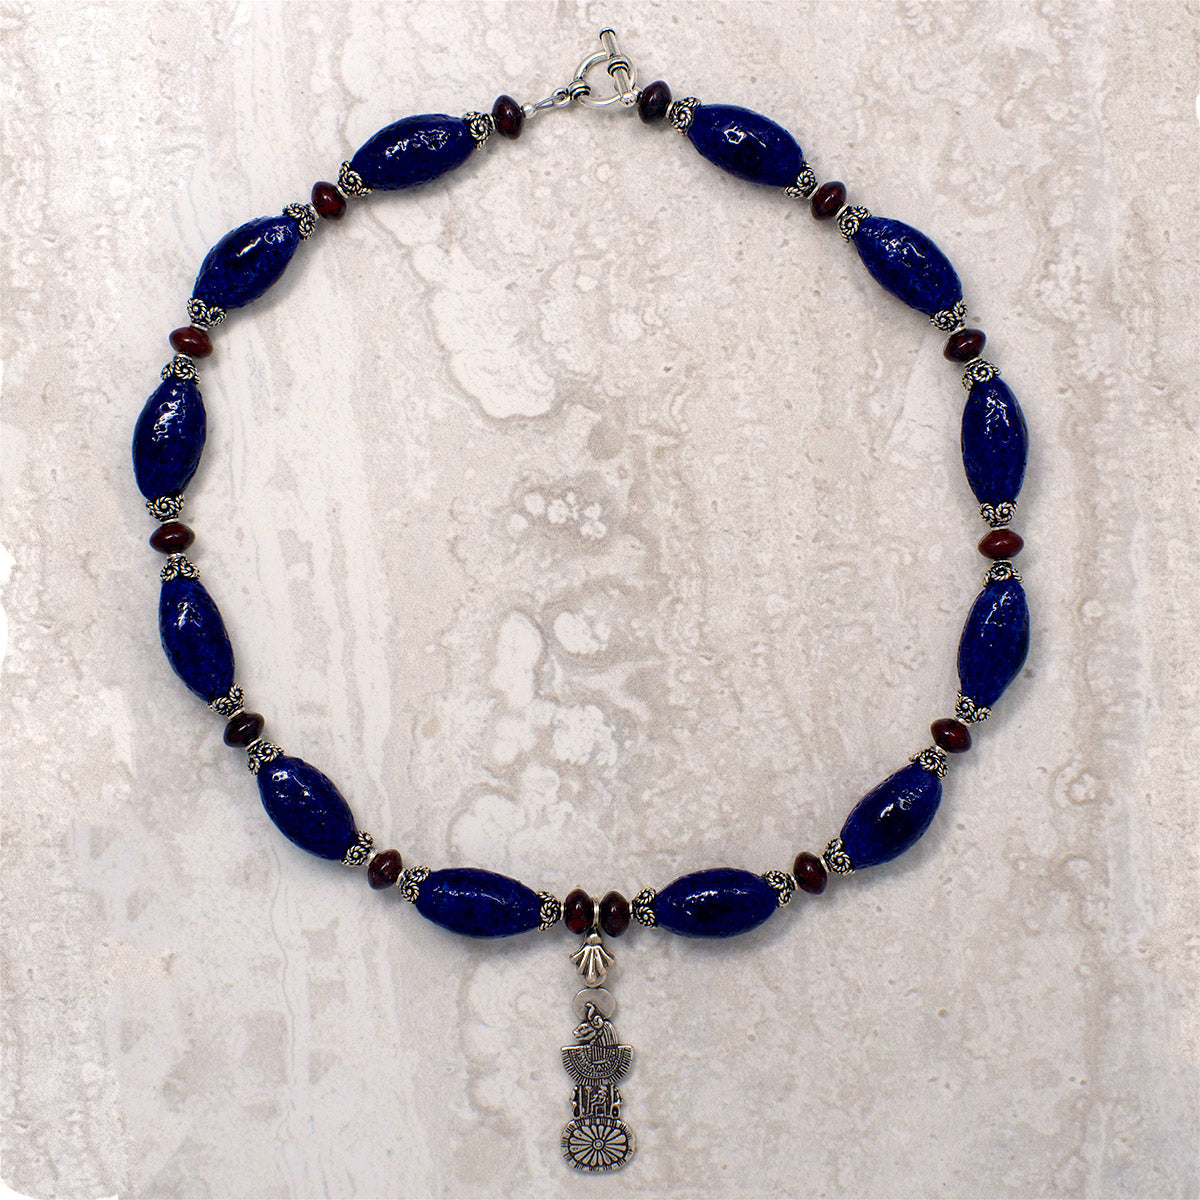 Men's Necklace in Indigo Blue Faience and Red Jasper Roundels - Em Hotep Collection